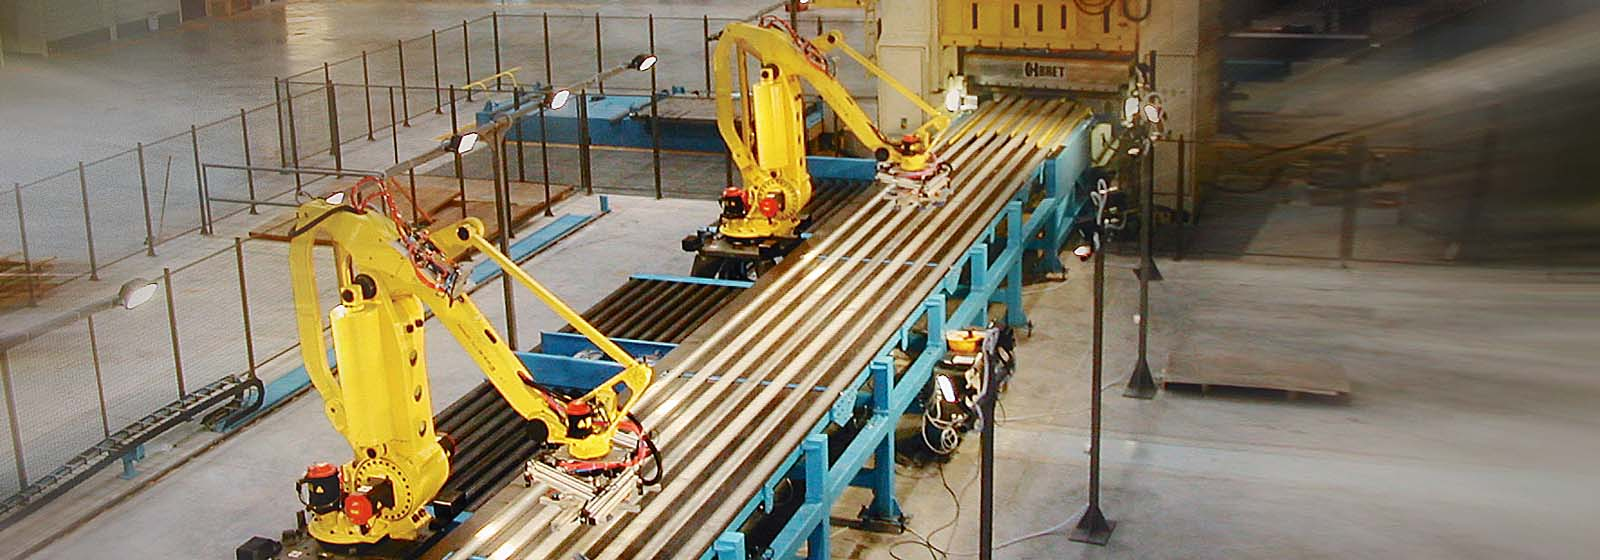 Two M-410 robots handling large metal sheets